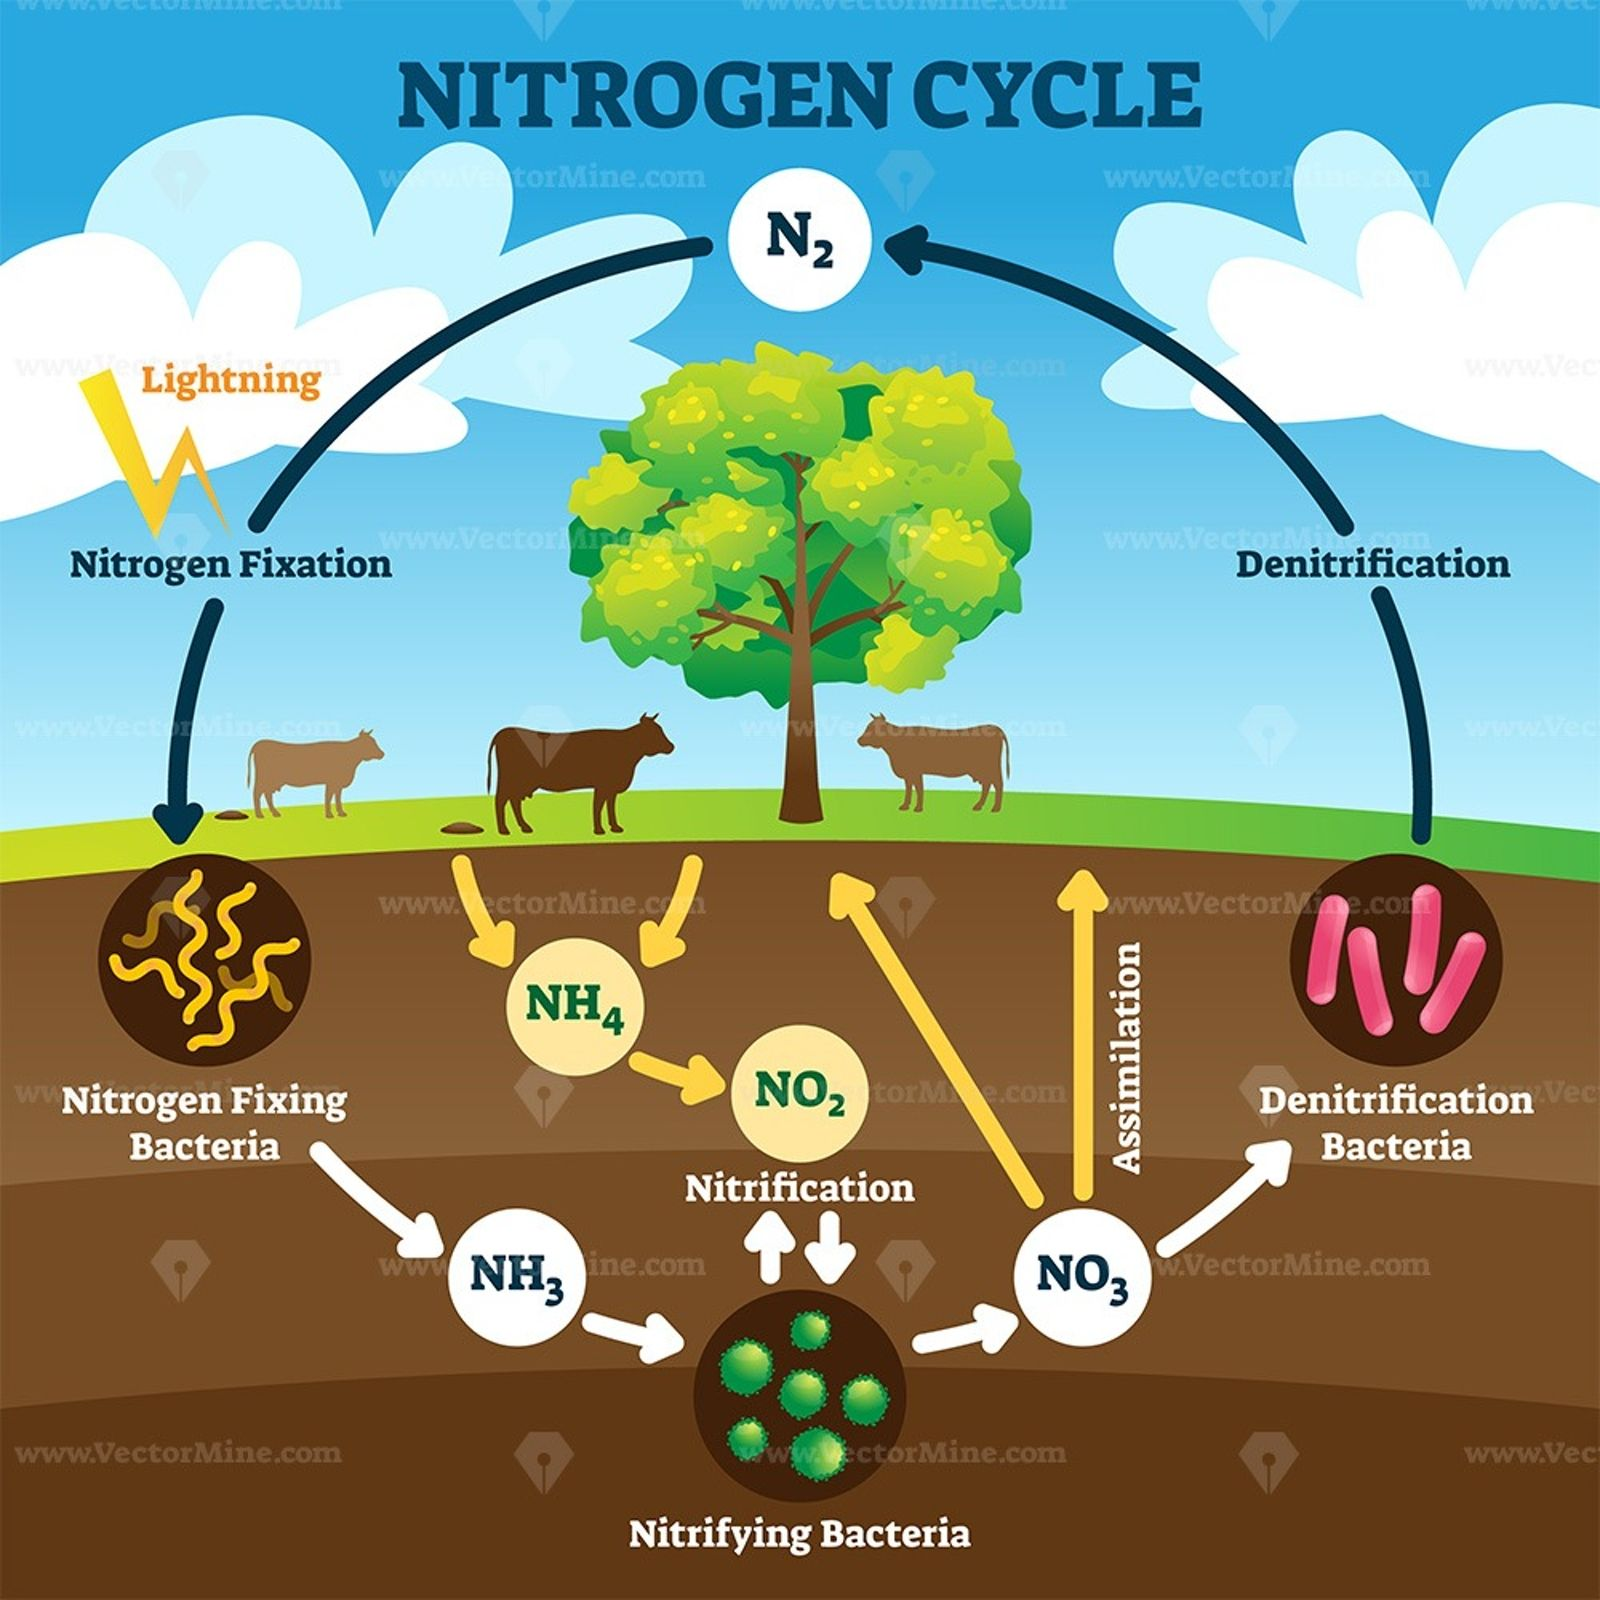 Nitrogen Cycle Vector Illustration In 2020 Nitrogen Cycle Science For Kids Nitrogen